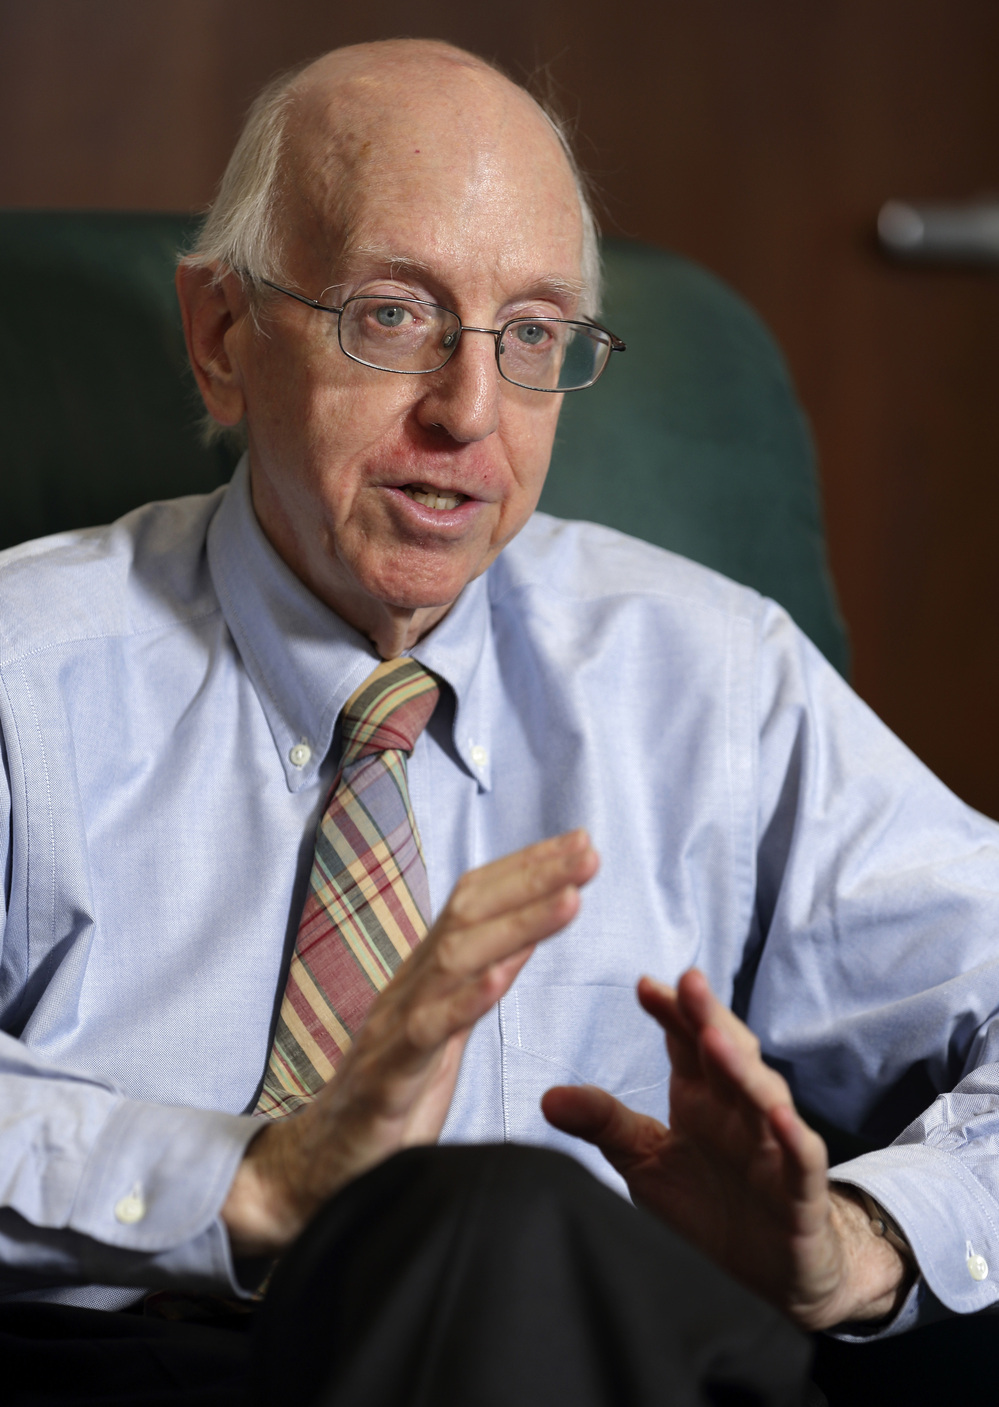 Judge Richard Posner of the 7th U.S. Circuit Court of Appeals in Chicago.